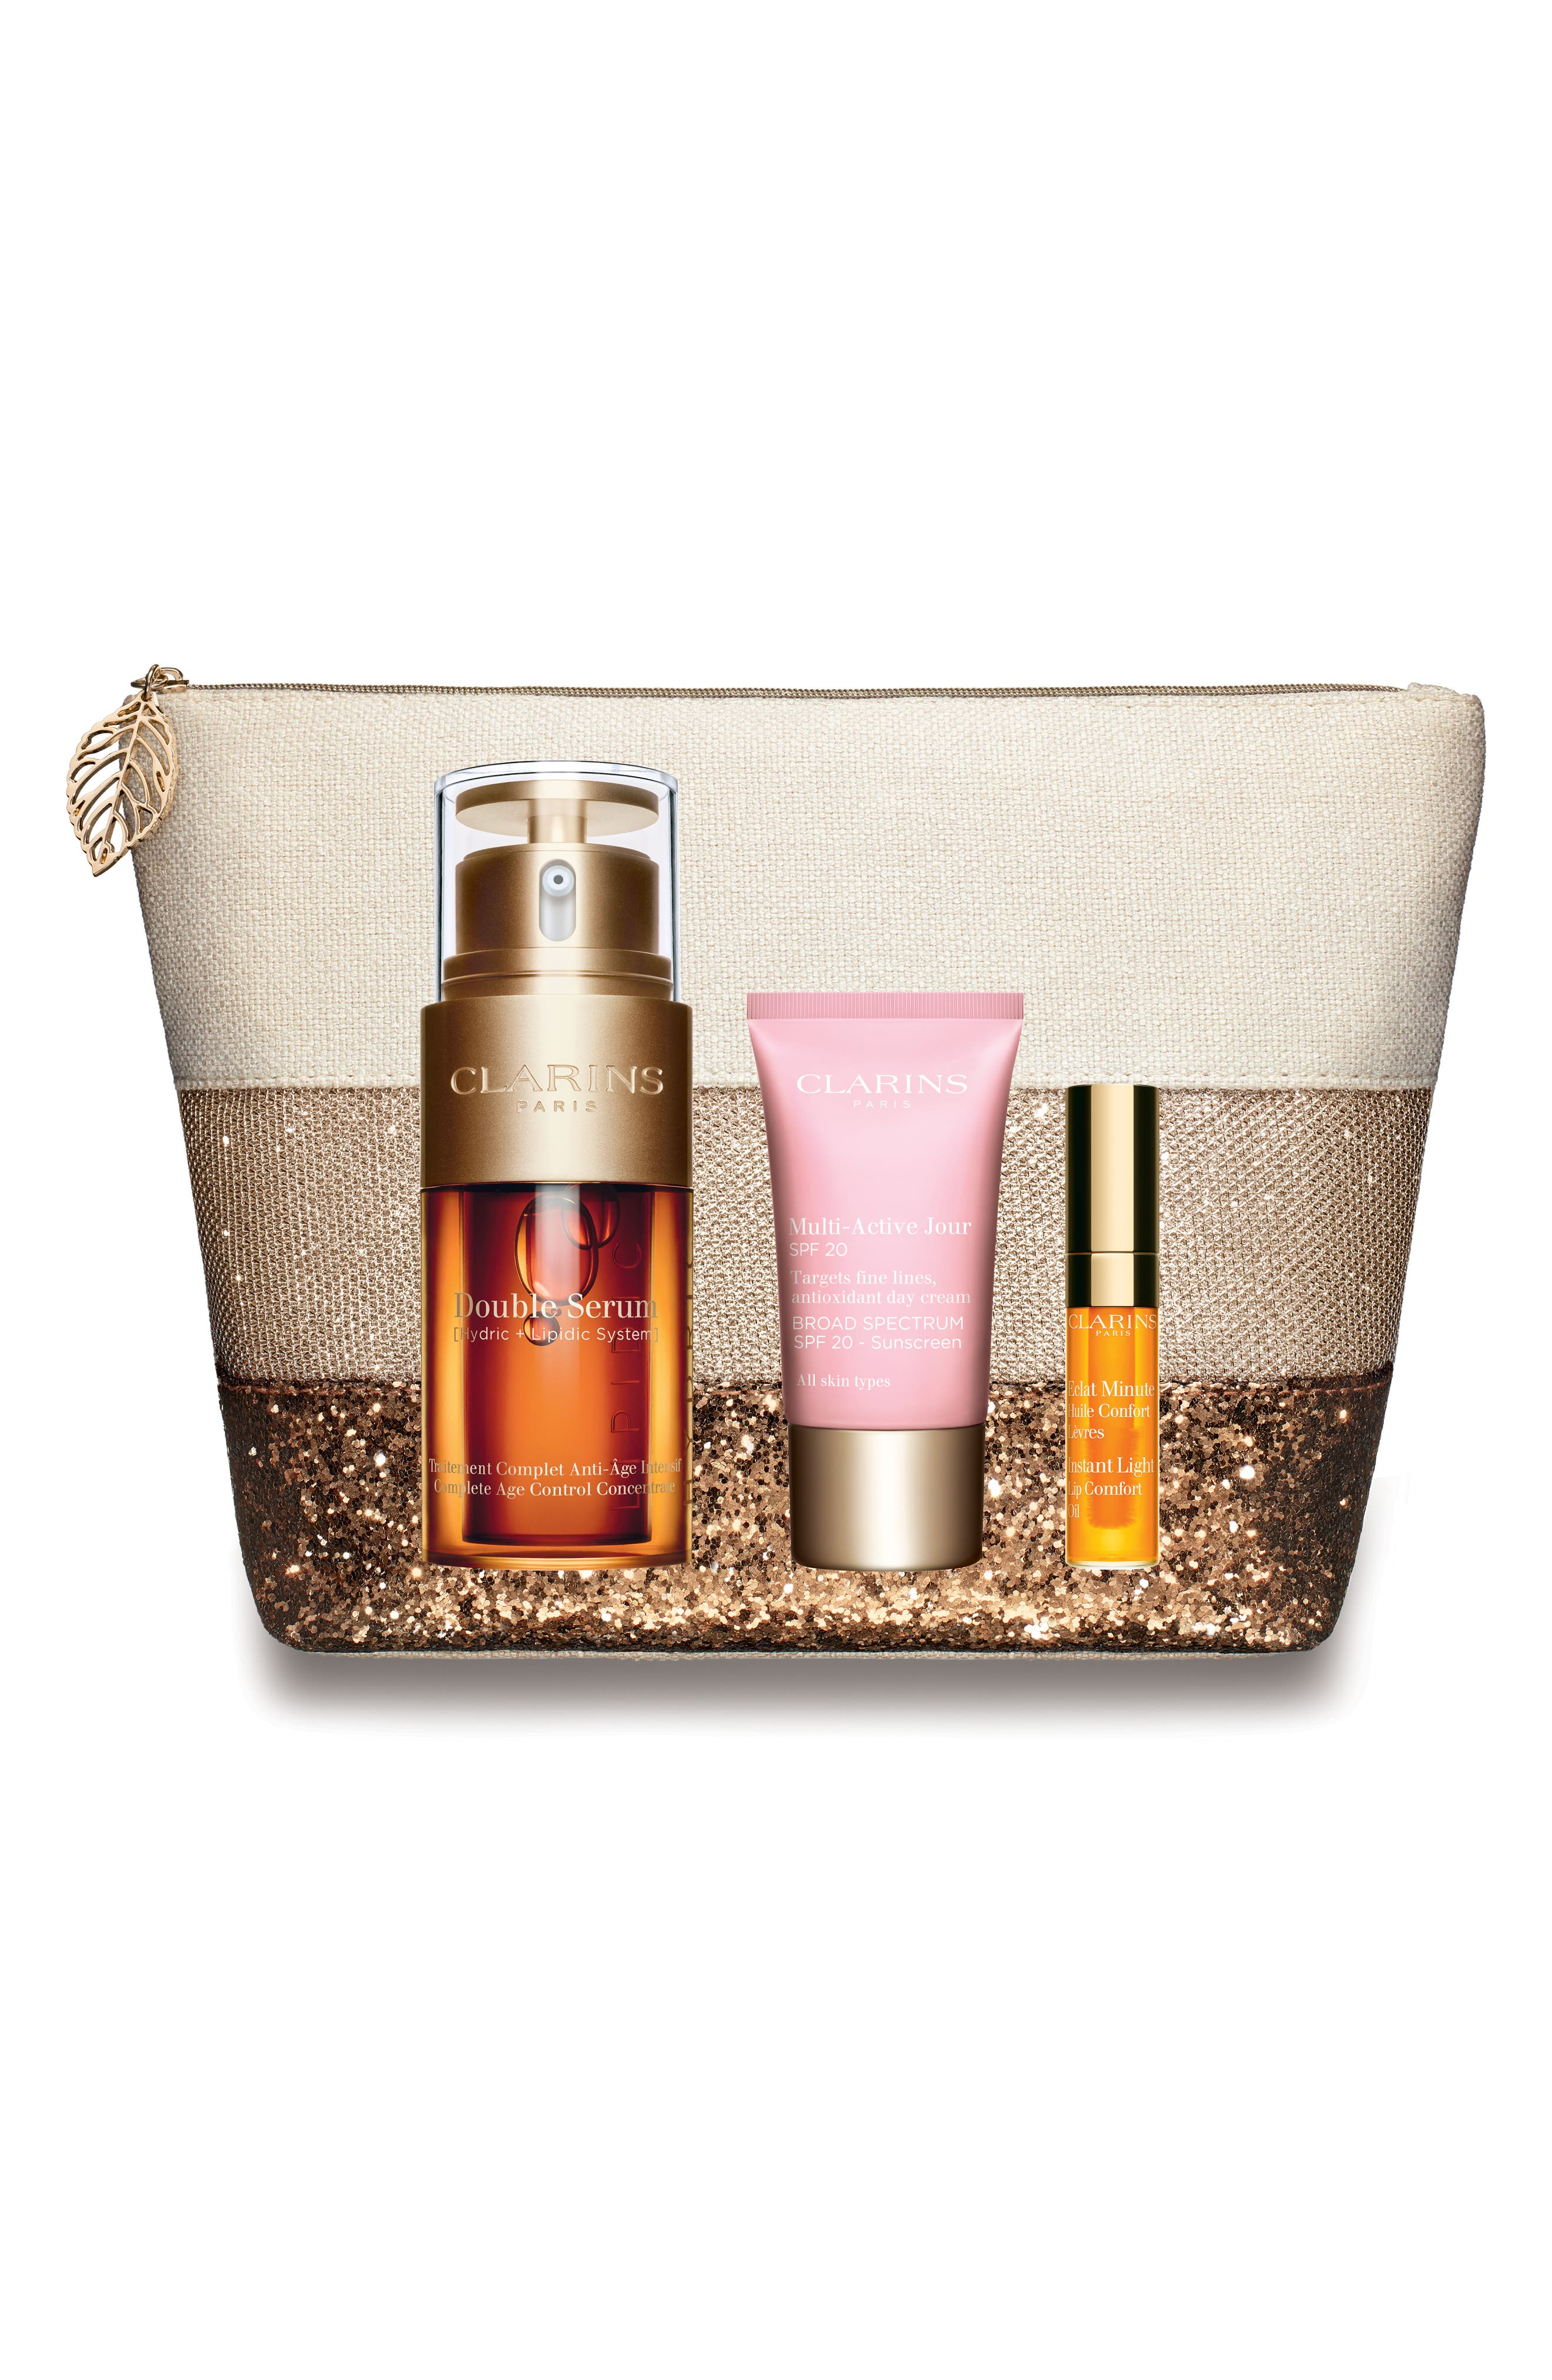 Clarins Multi-Active Double Serum Set (Over $115 Value)